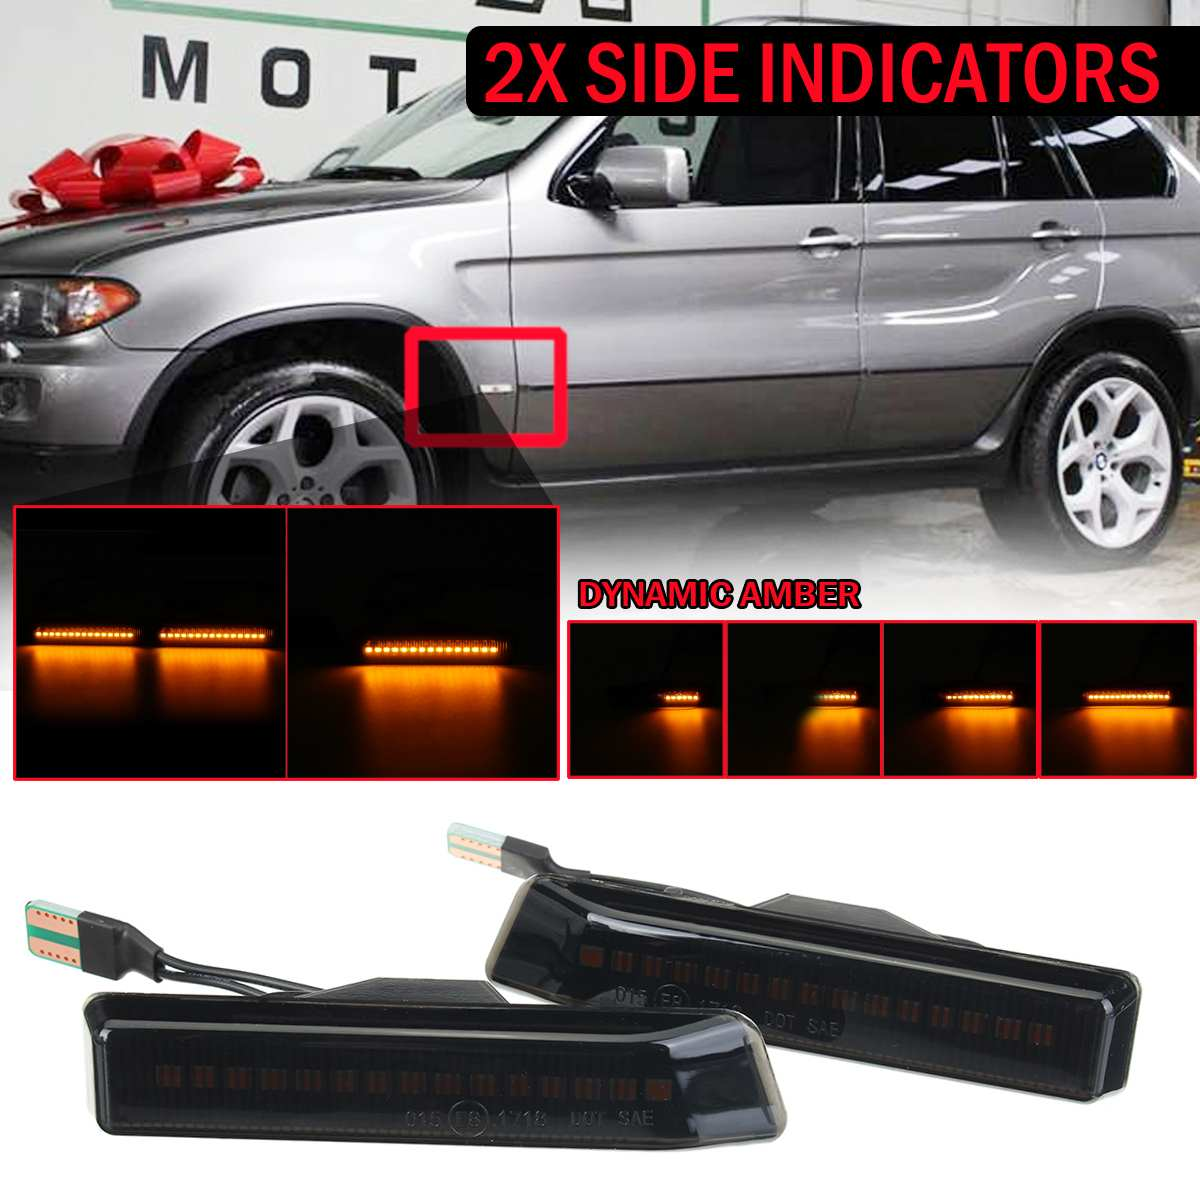 2pcs Dynamic <font><b>LED</b></font> Side Marker Lights Flowing Turn Signal Light 12V Panel Lamp Blinker for <font><b>BMW</b></font> X5 E53 00-06 M3 3 SERIES <font><b>E36</b></font> 97-98 image